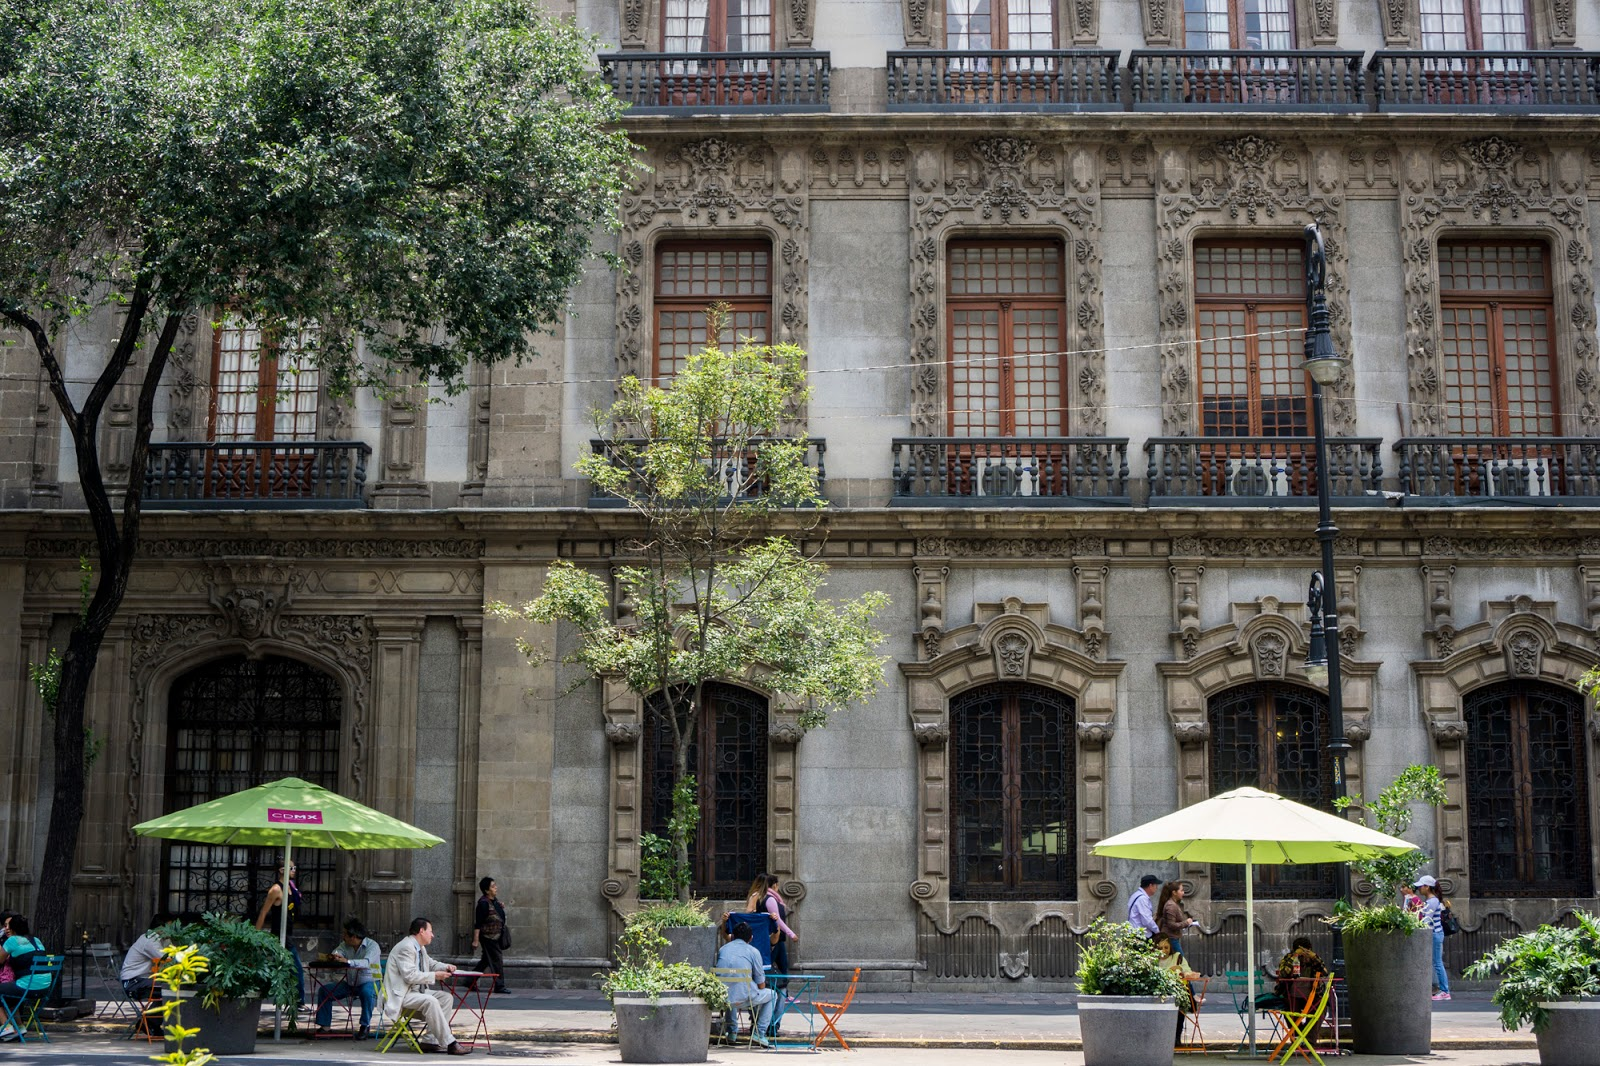 Mexico City • The Cutlery Chronicles